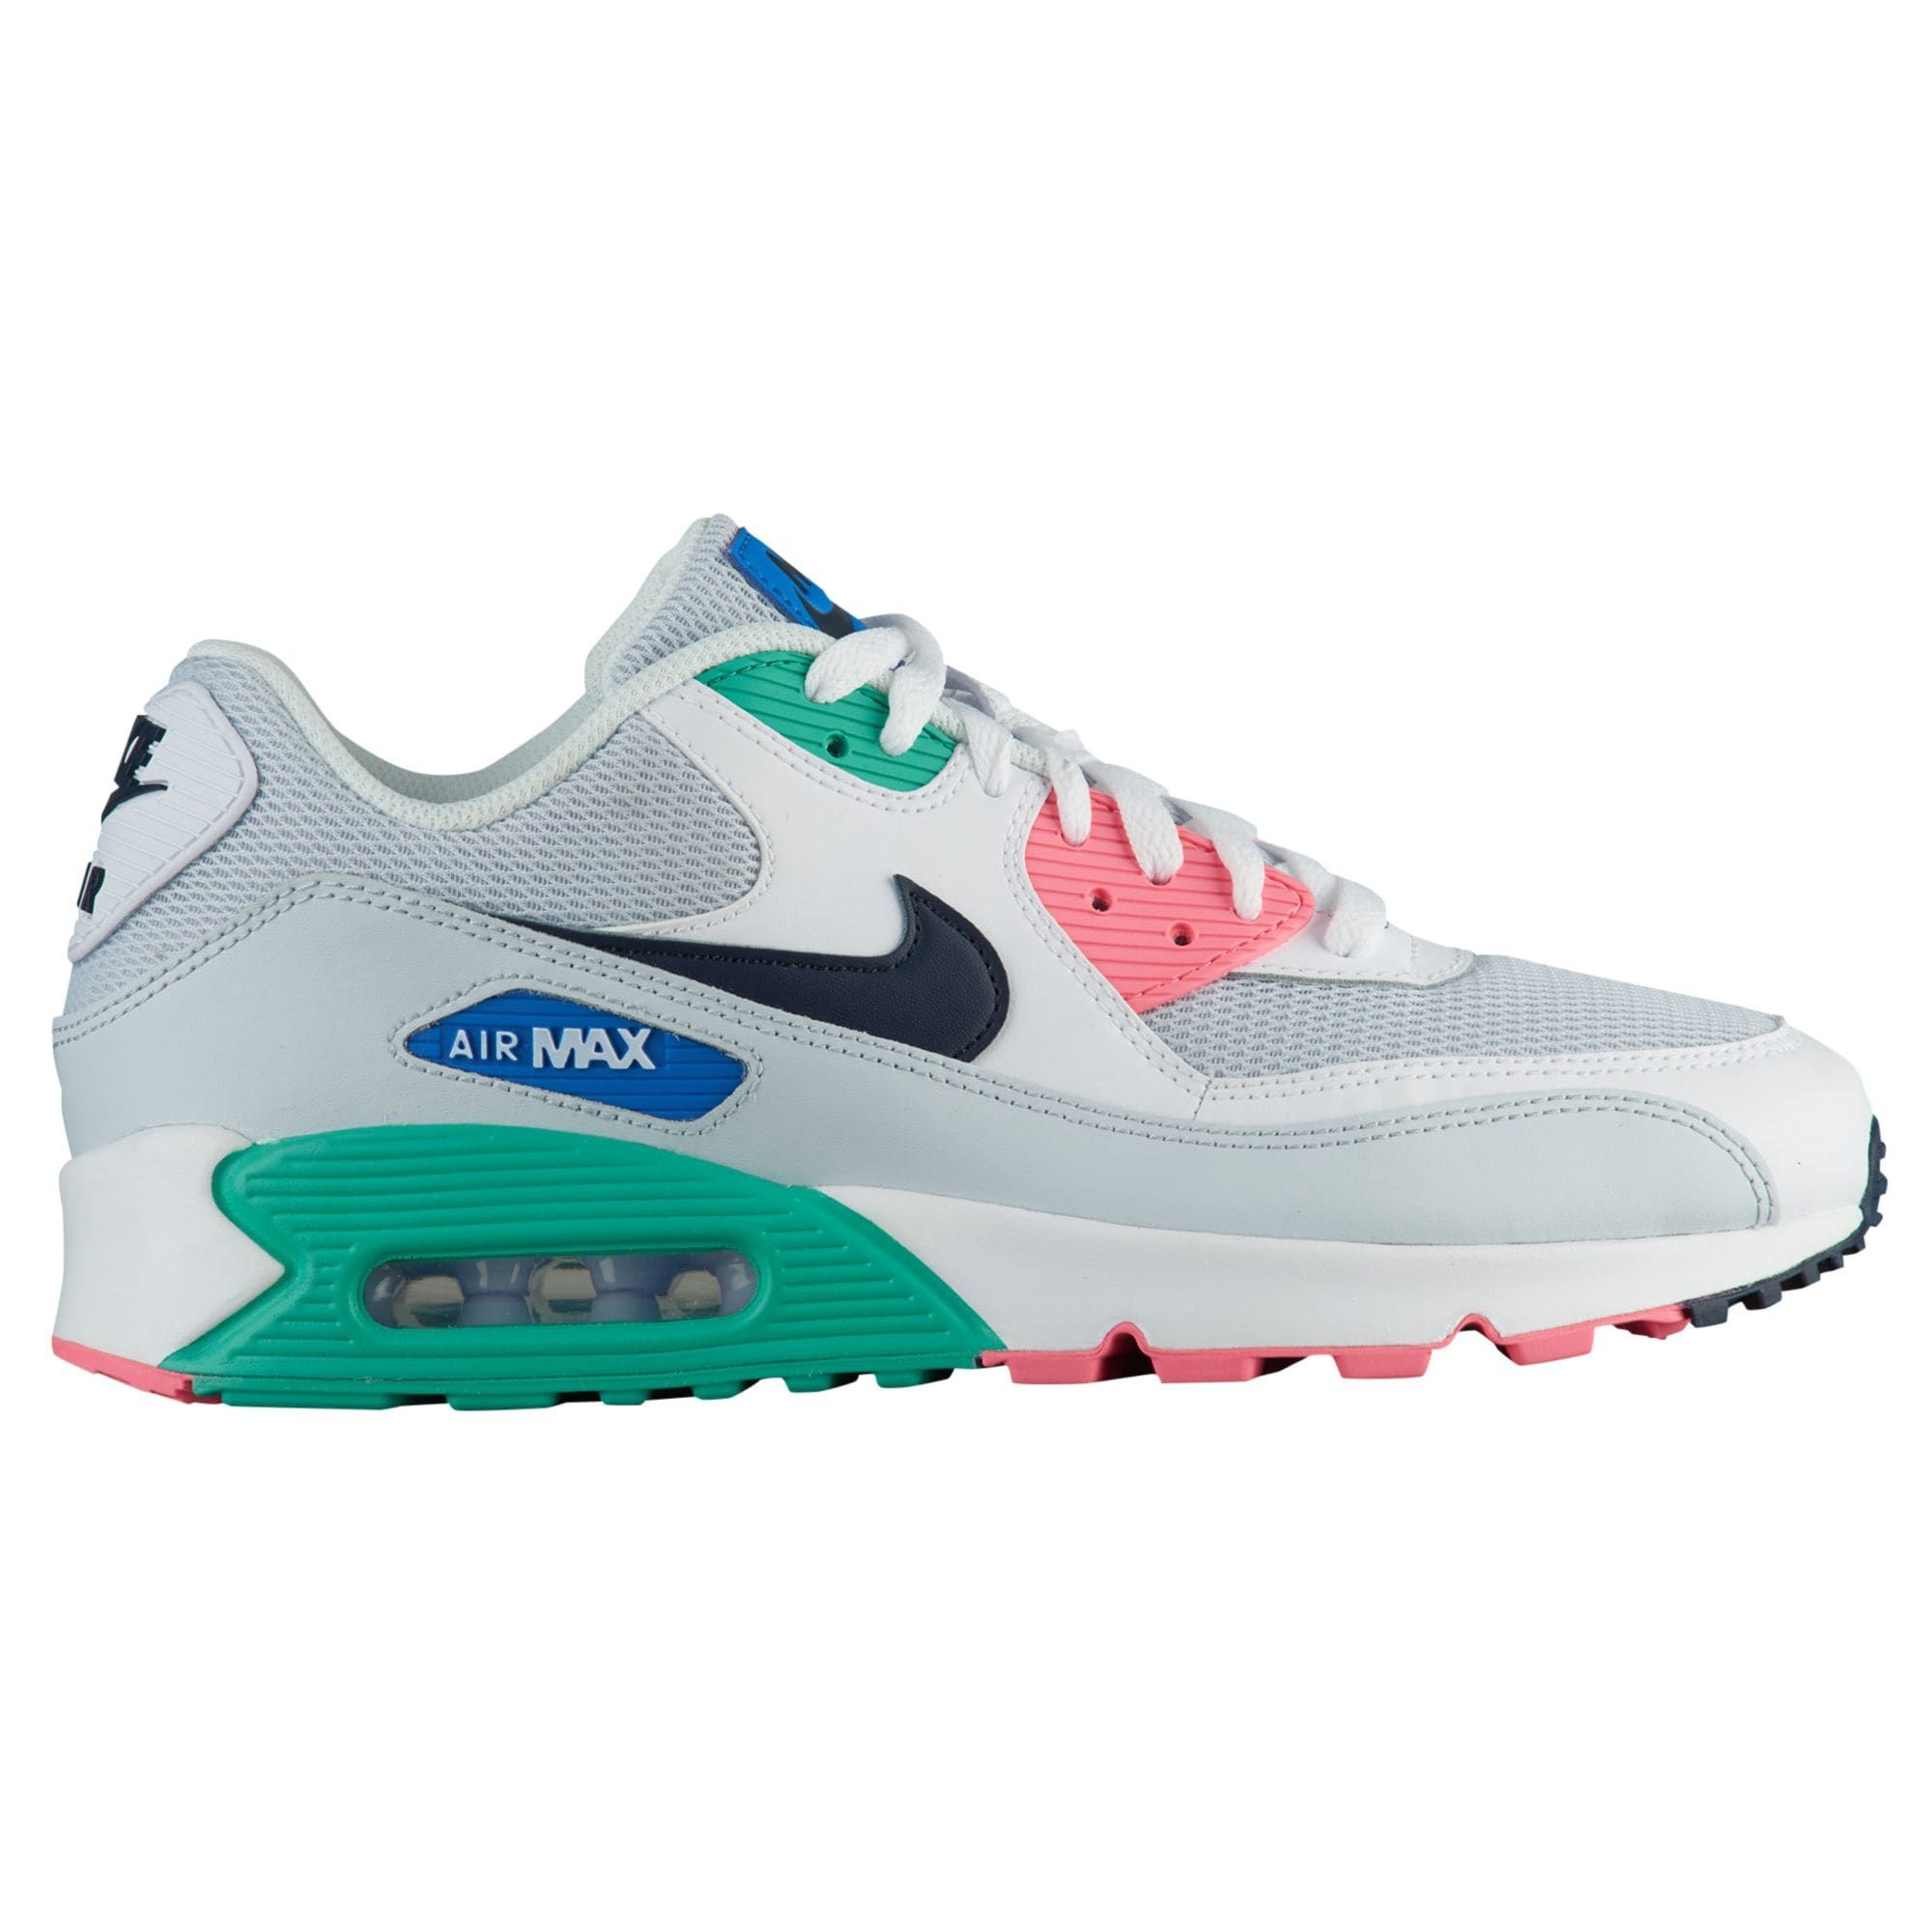 new product f89cd 3751a Nike Air Max 90 - Men's - Casual - Shoes - White/Obsidian ...